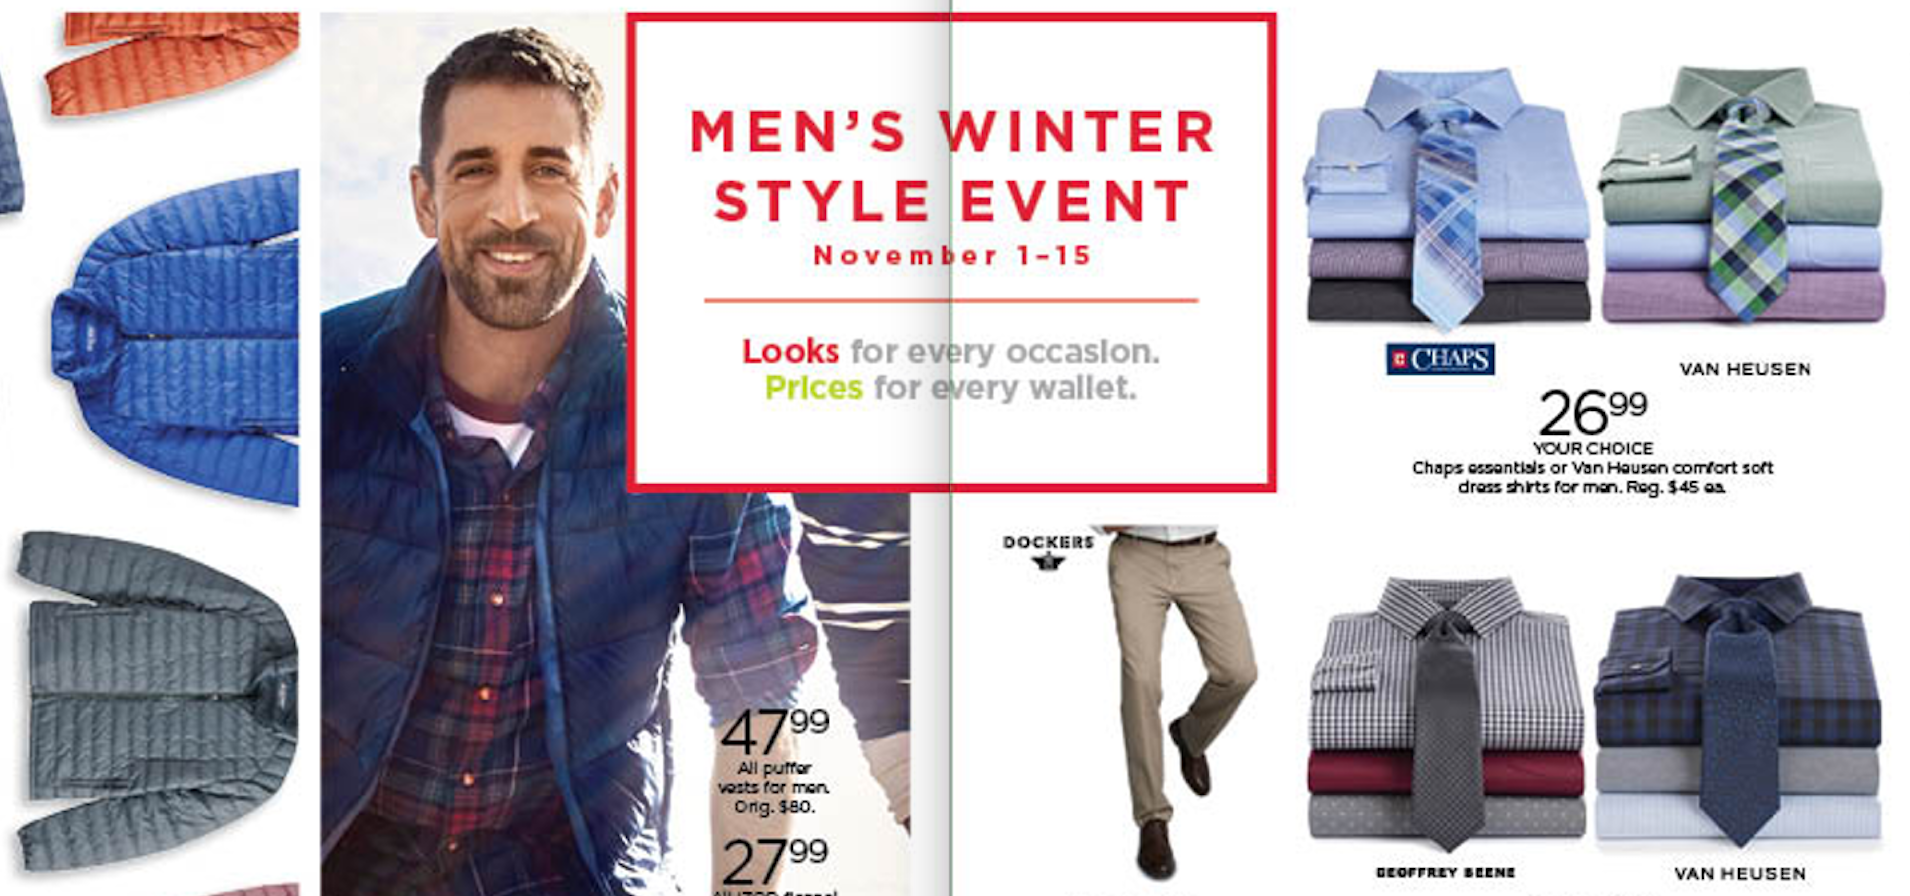 Kohl's - I wrote this value-focused headline in a catalog next to NFL quarterback Aaron Rodgers.